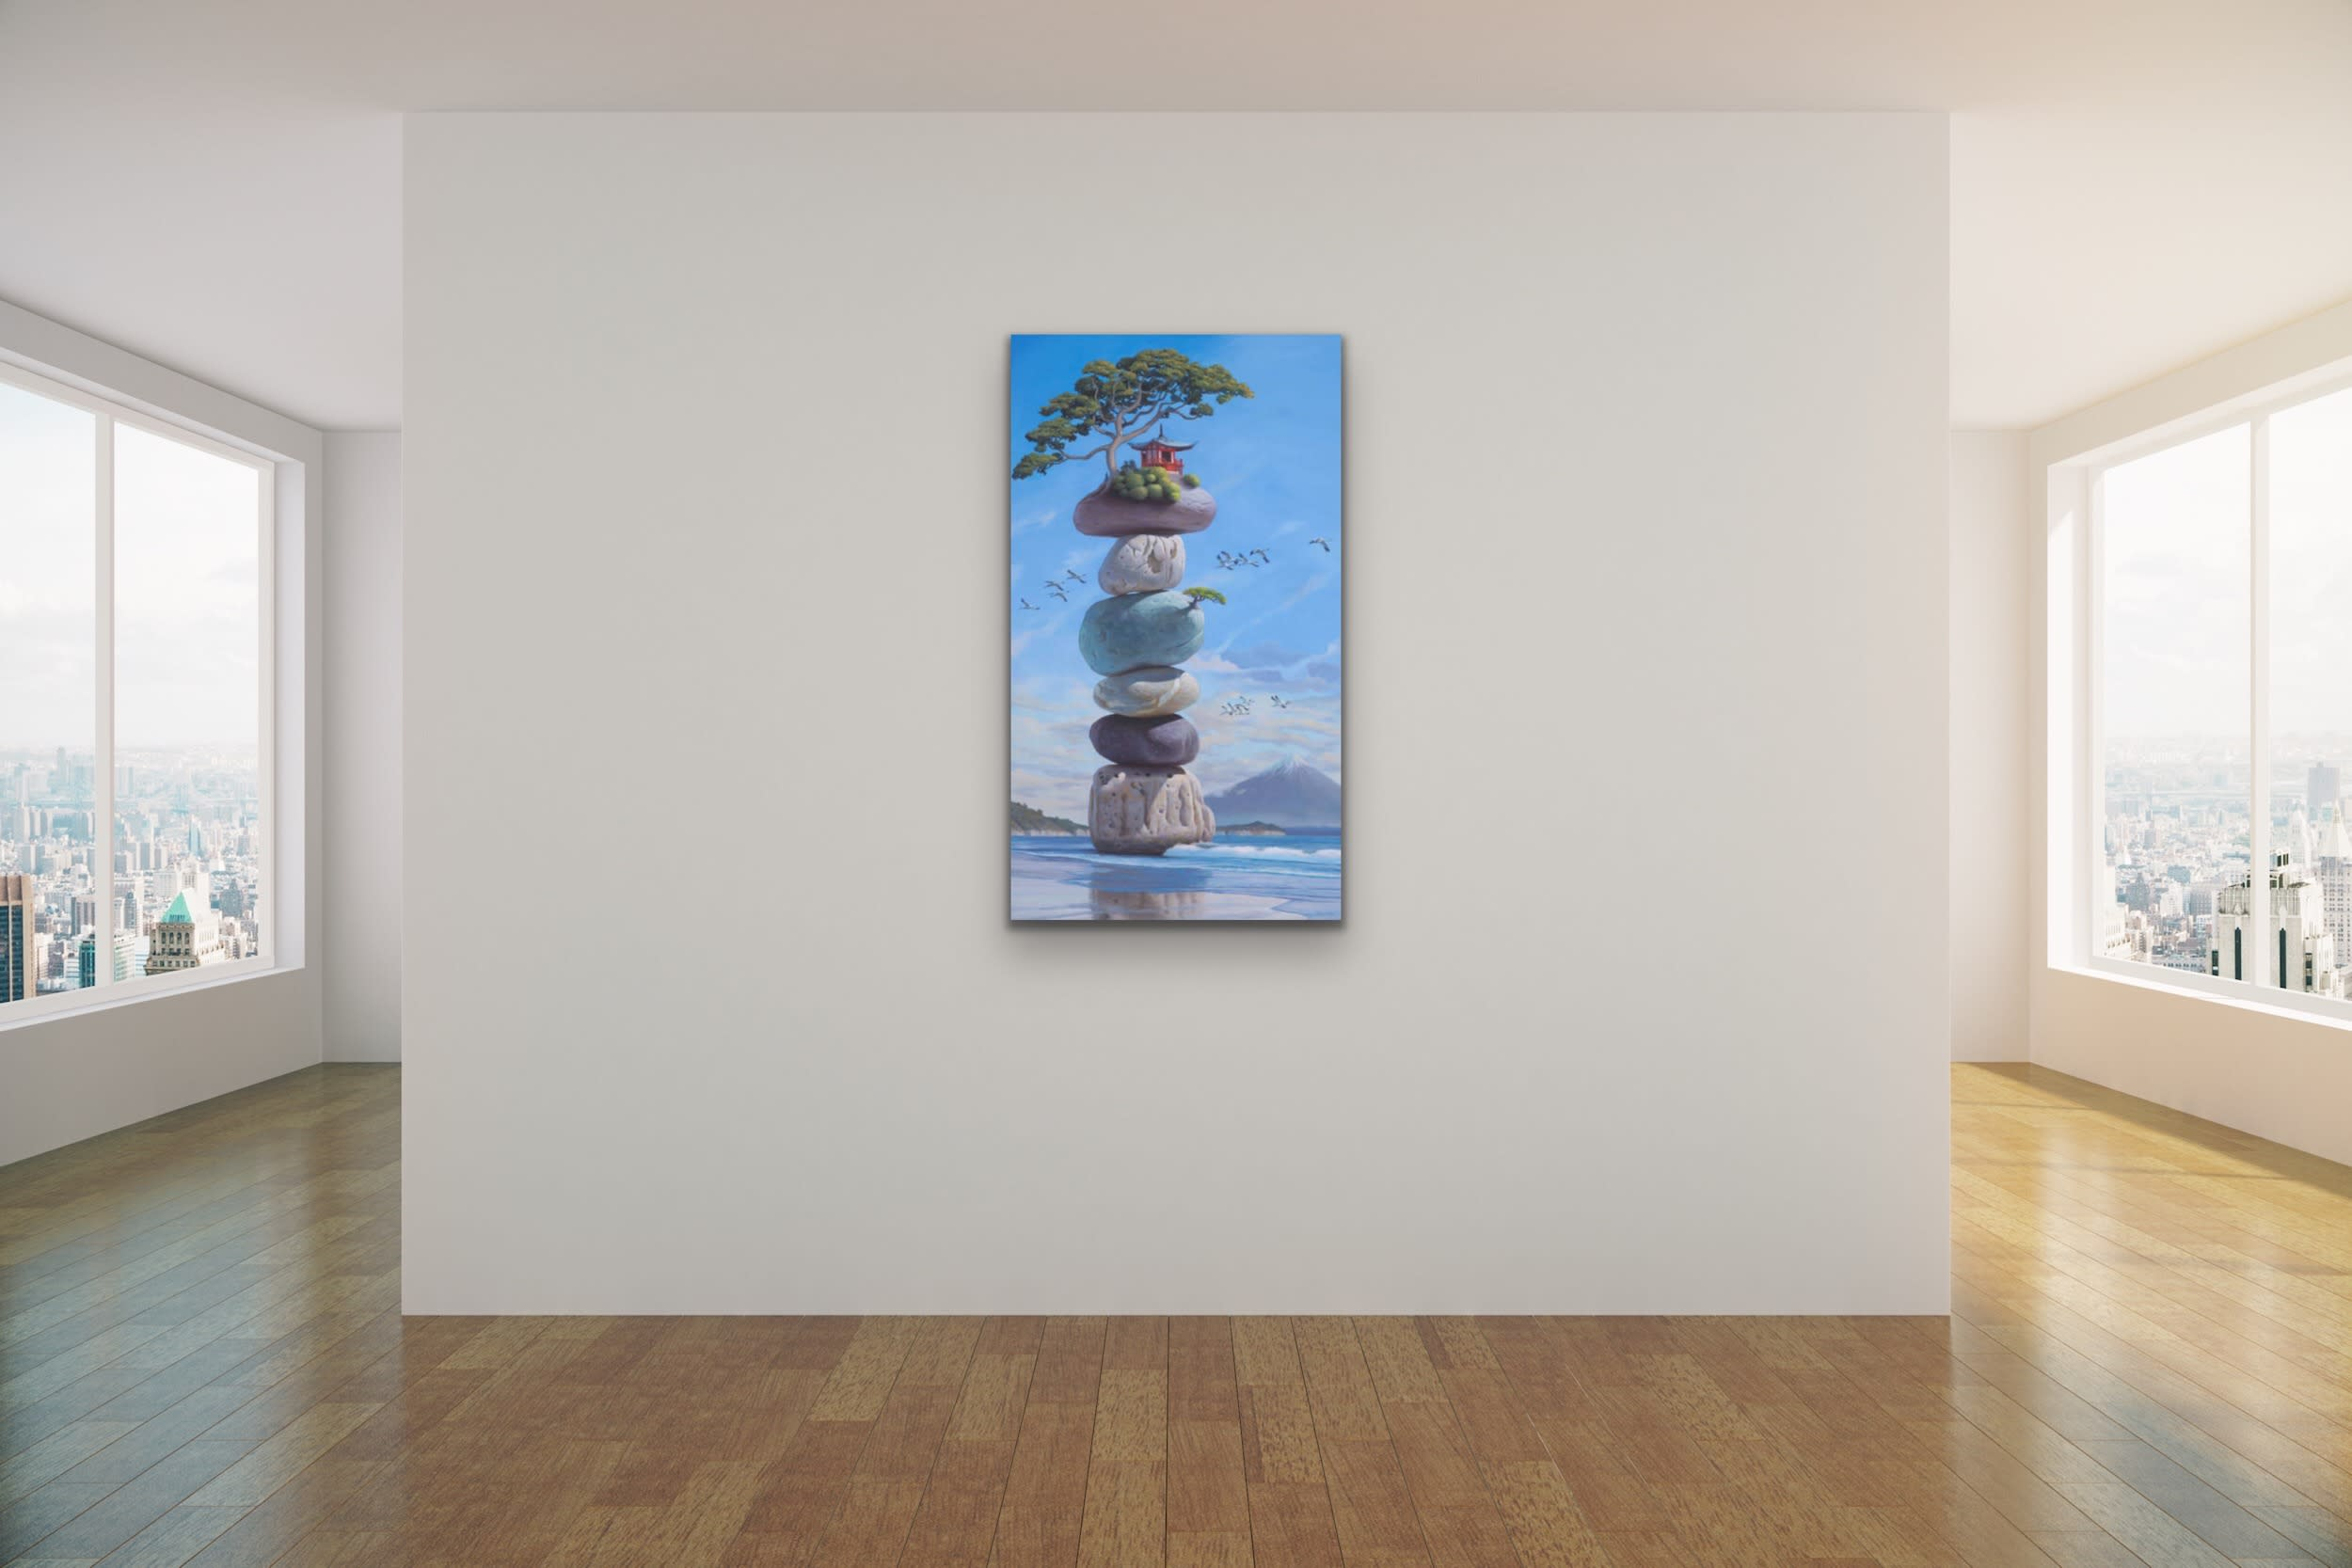 <div class='title'>           Paul Bond Magical Realism Poetry Serene Landscape Animals Nature Surreal Metaphorical Whimsical Fantasy Evo Art Maui Lahaina Front Street Art Gallery 43         </div>